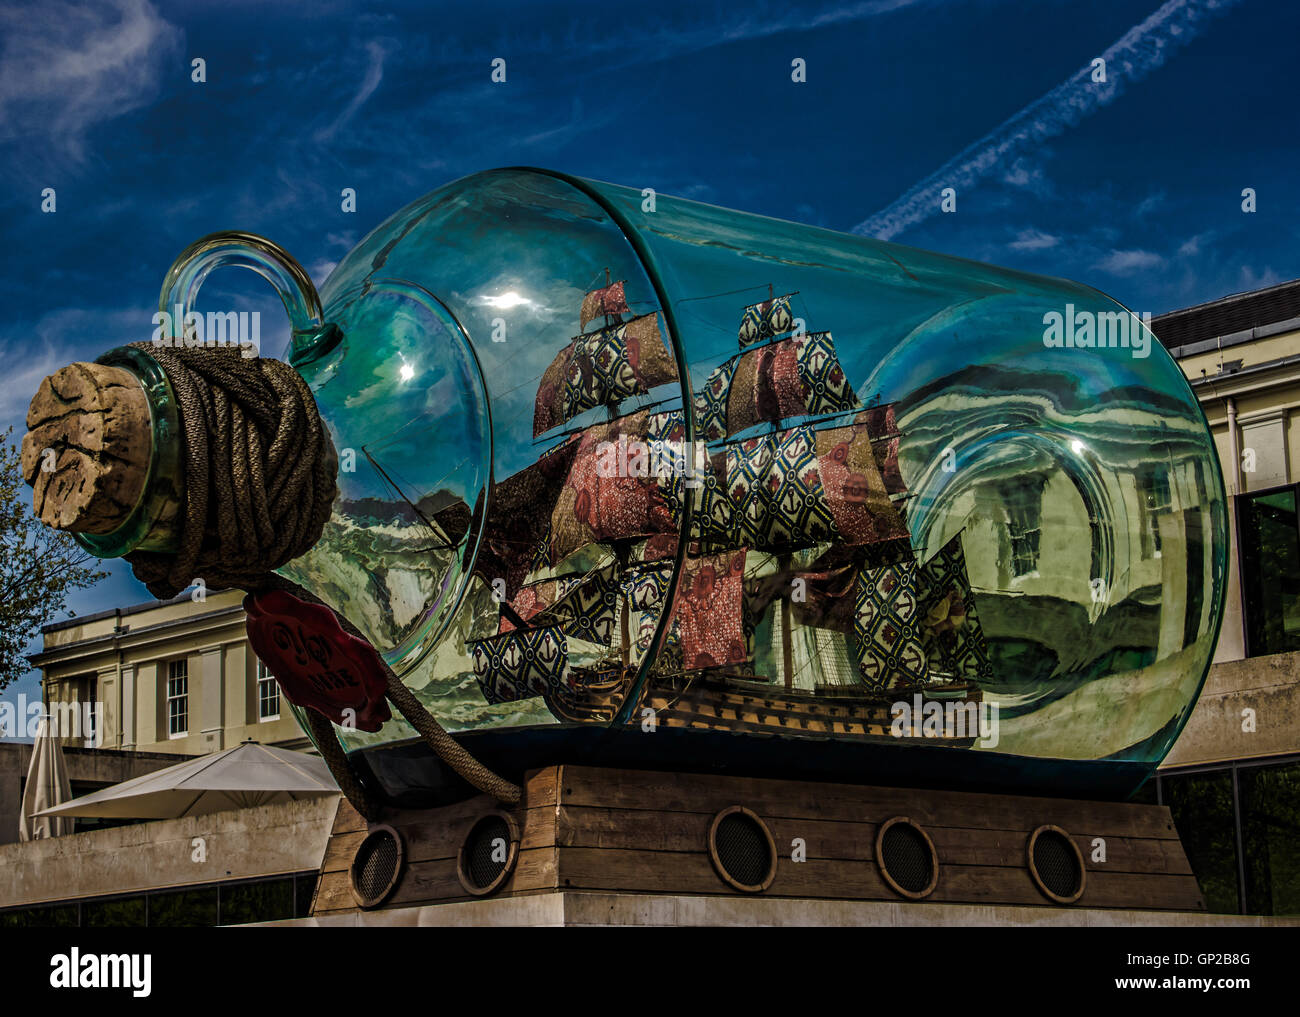 Ship in a Bottle - Stock Image